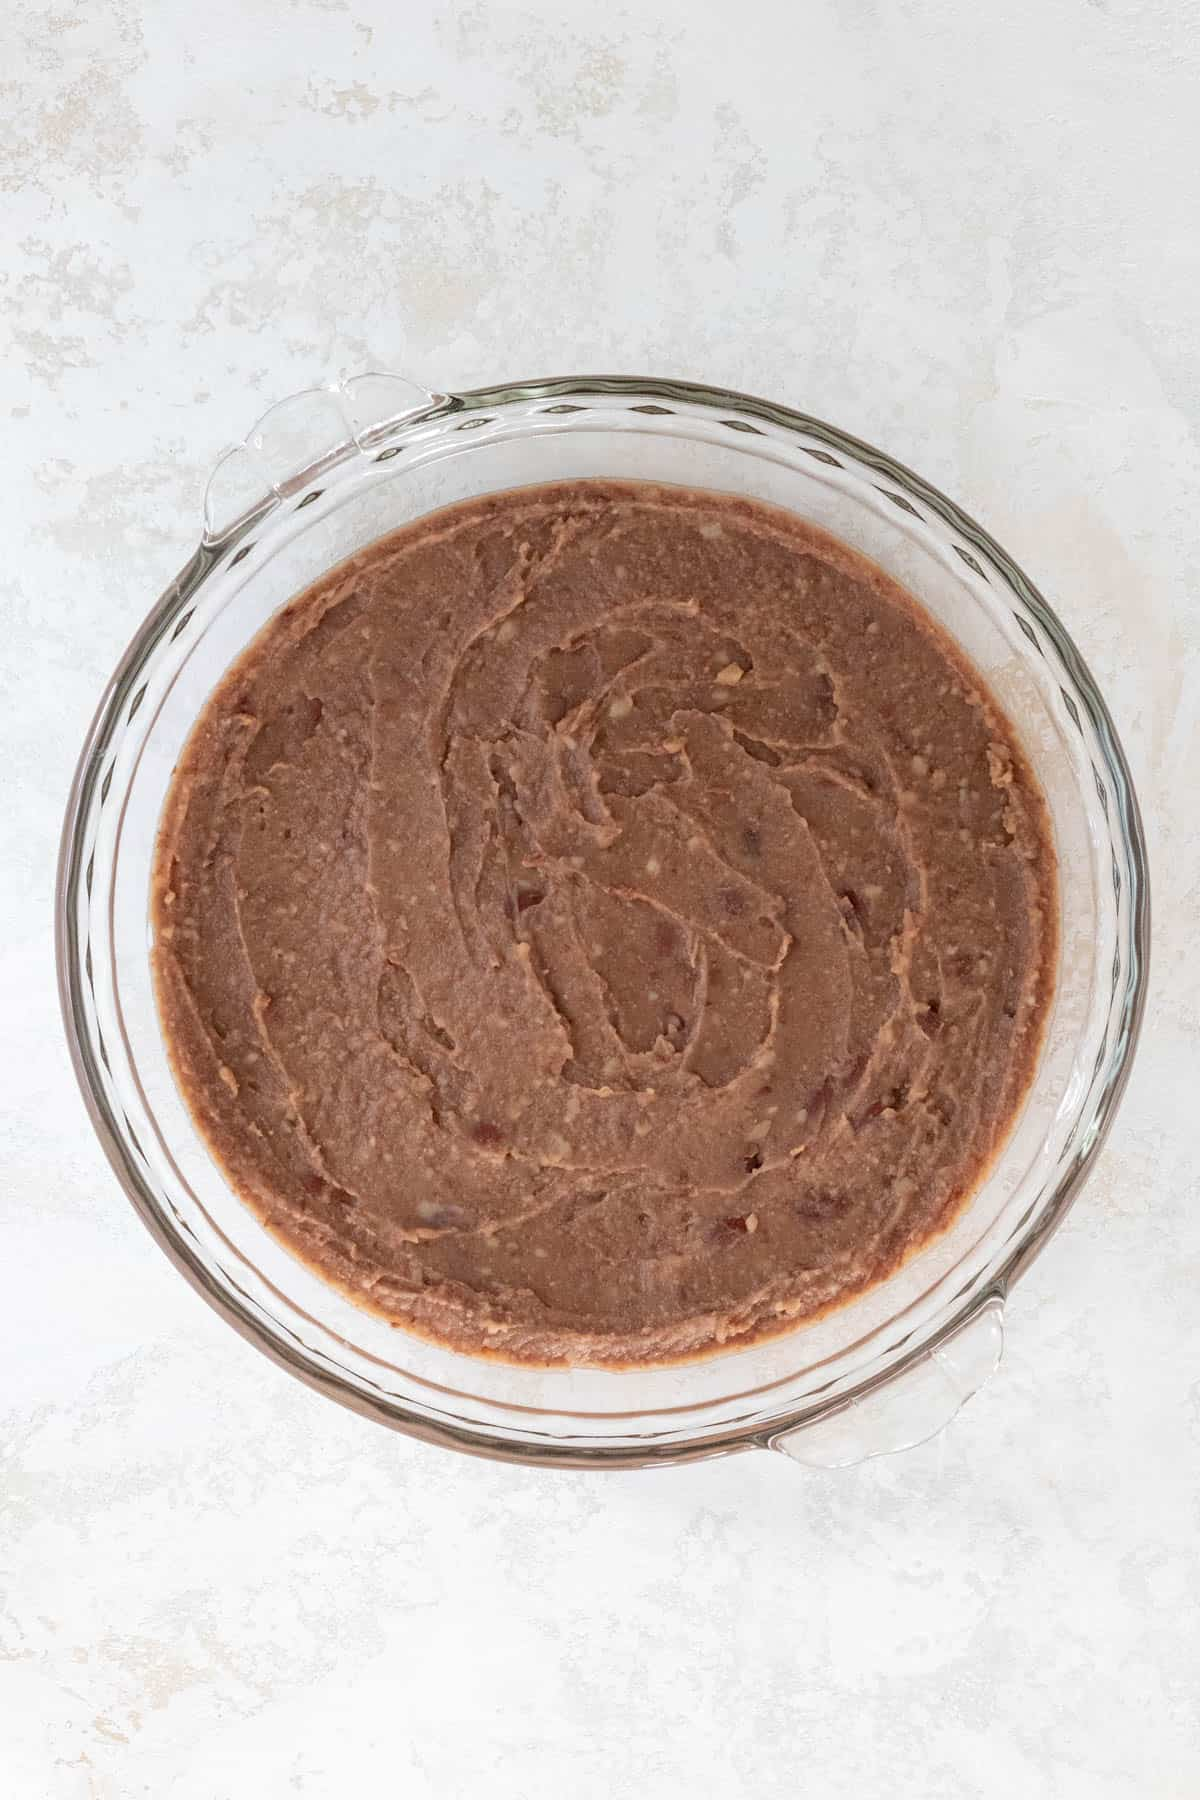 Refried beans spread out in a large pie dish.